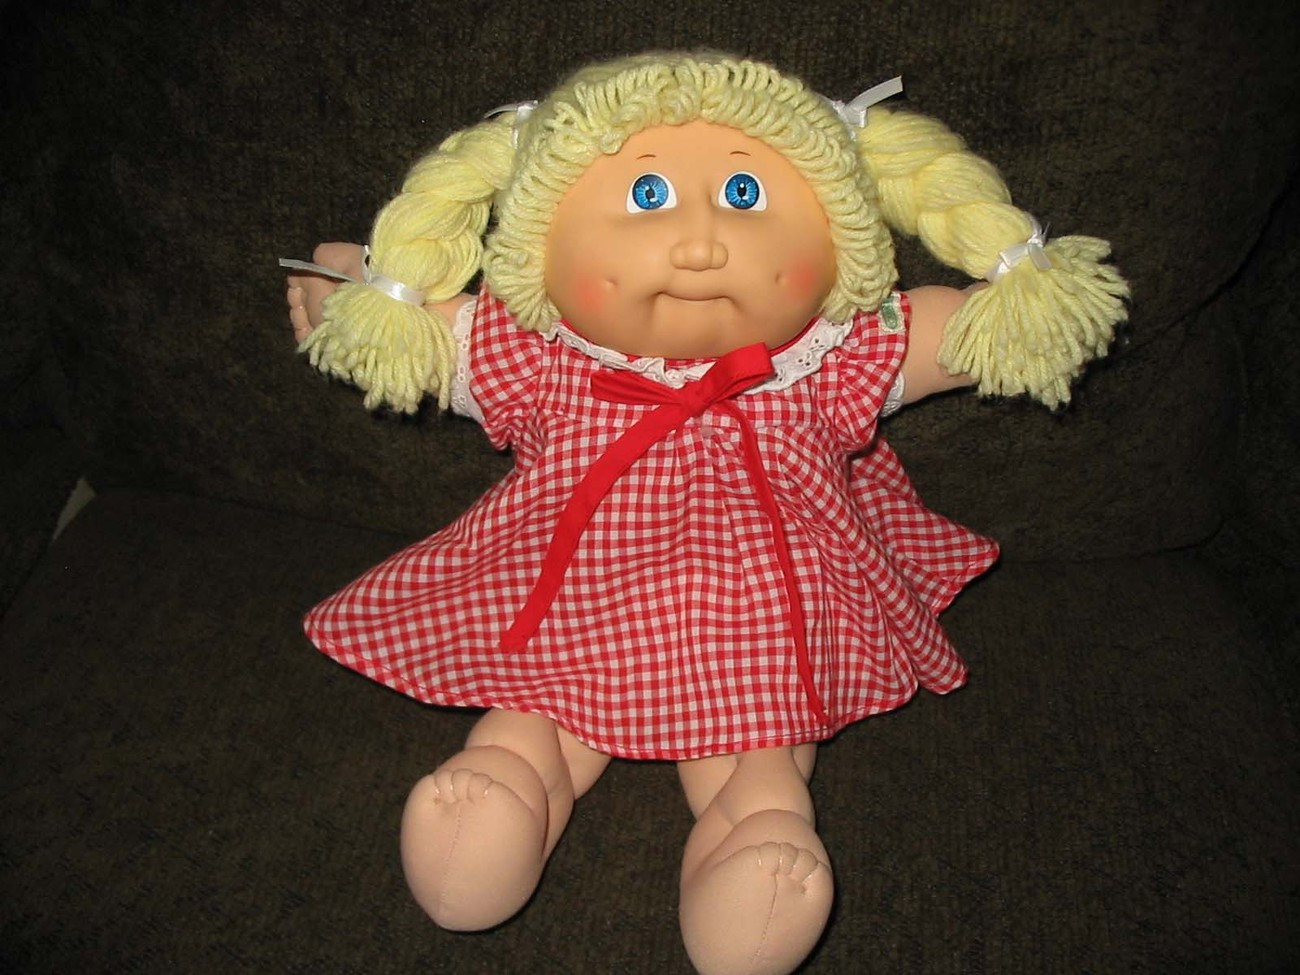 Awesome This is the Front Page Of the Website today Cabbage Patch Doll Prices Of Innovative 49 Models Cabbage Patch Doll Prices